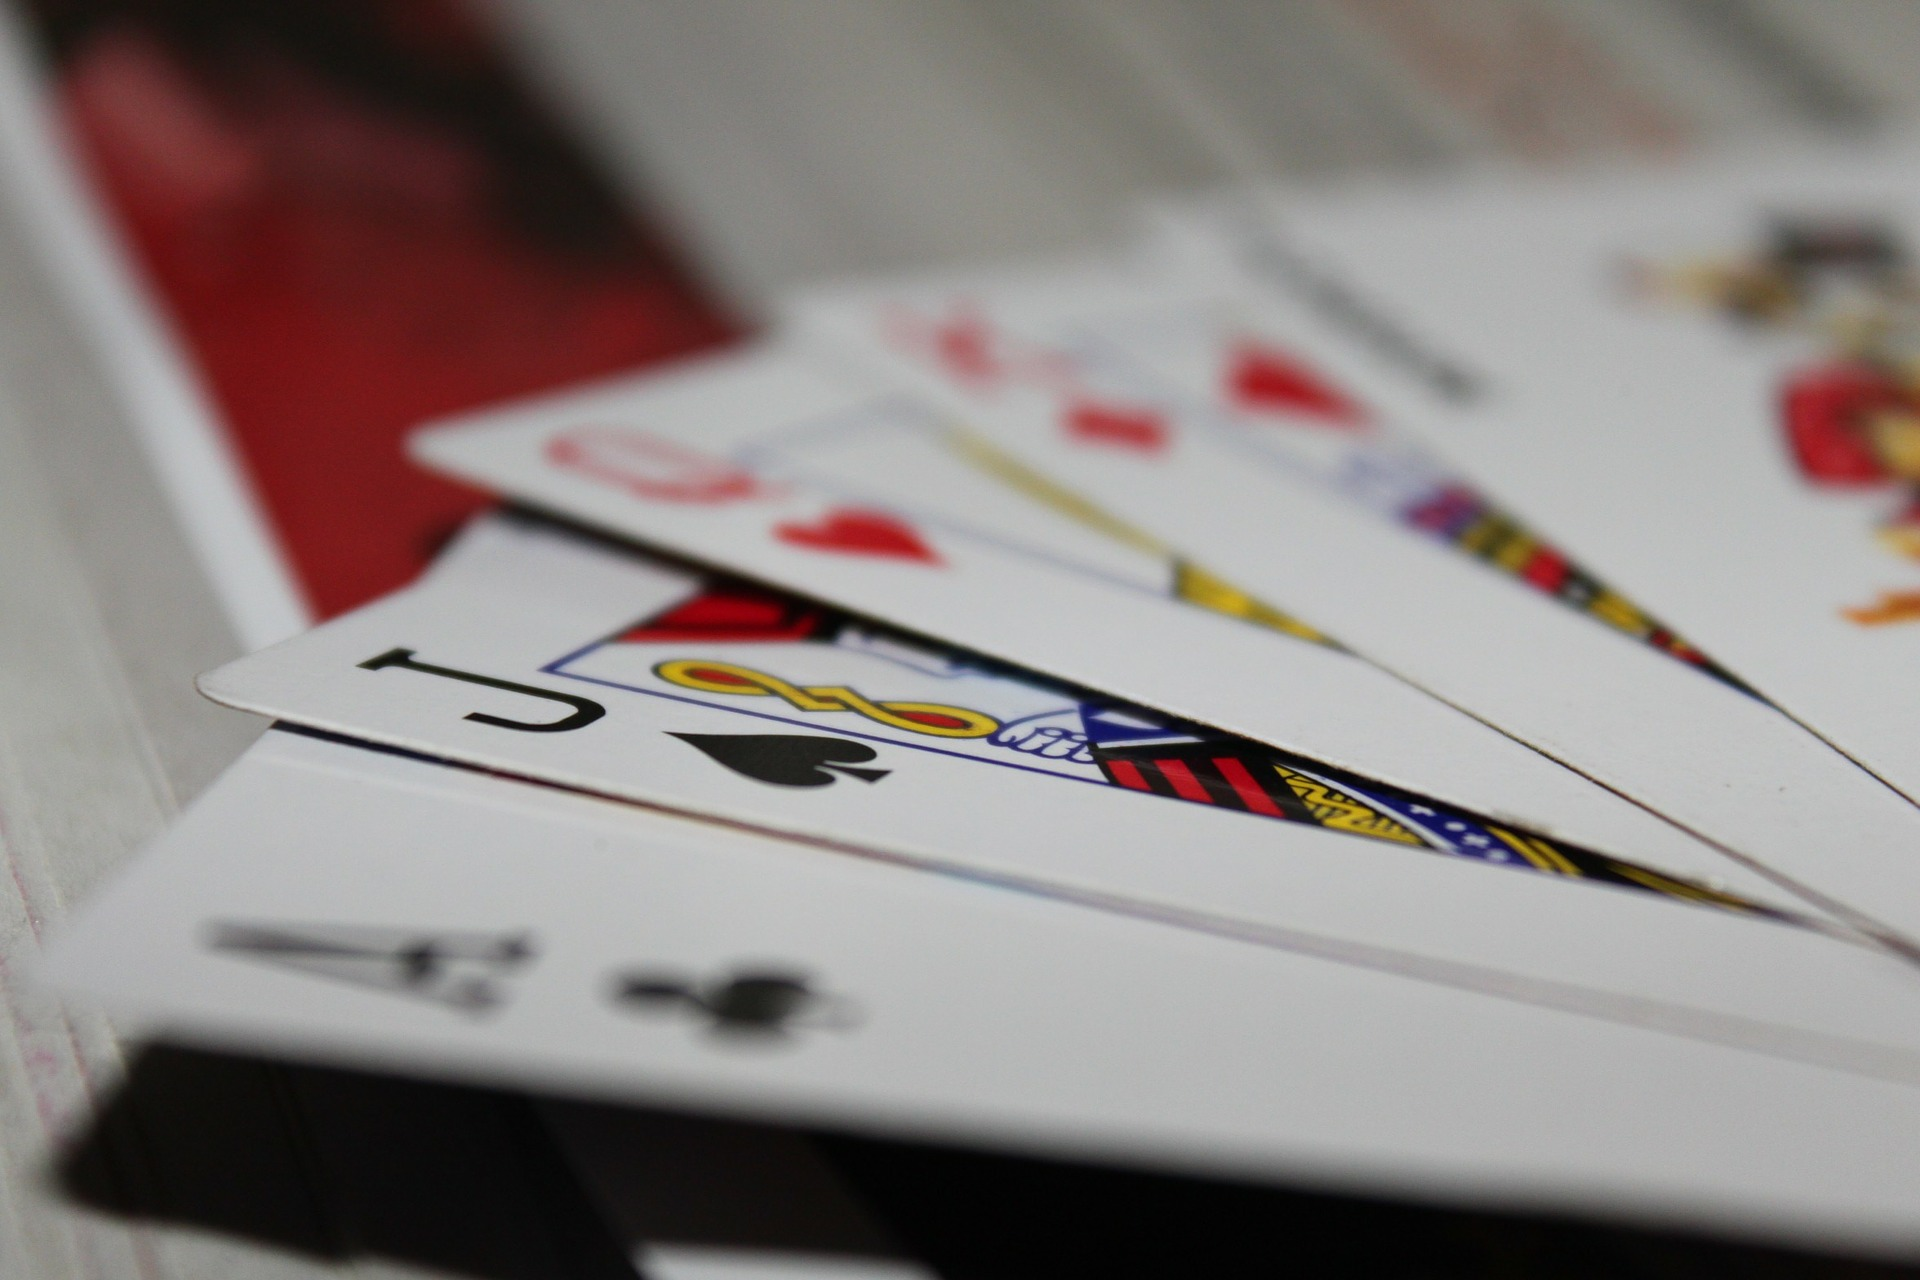 WSOPC and GGPoker team up for new online poker series